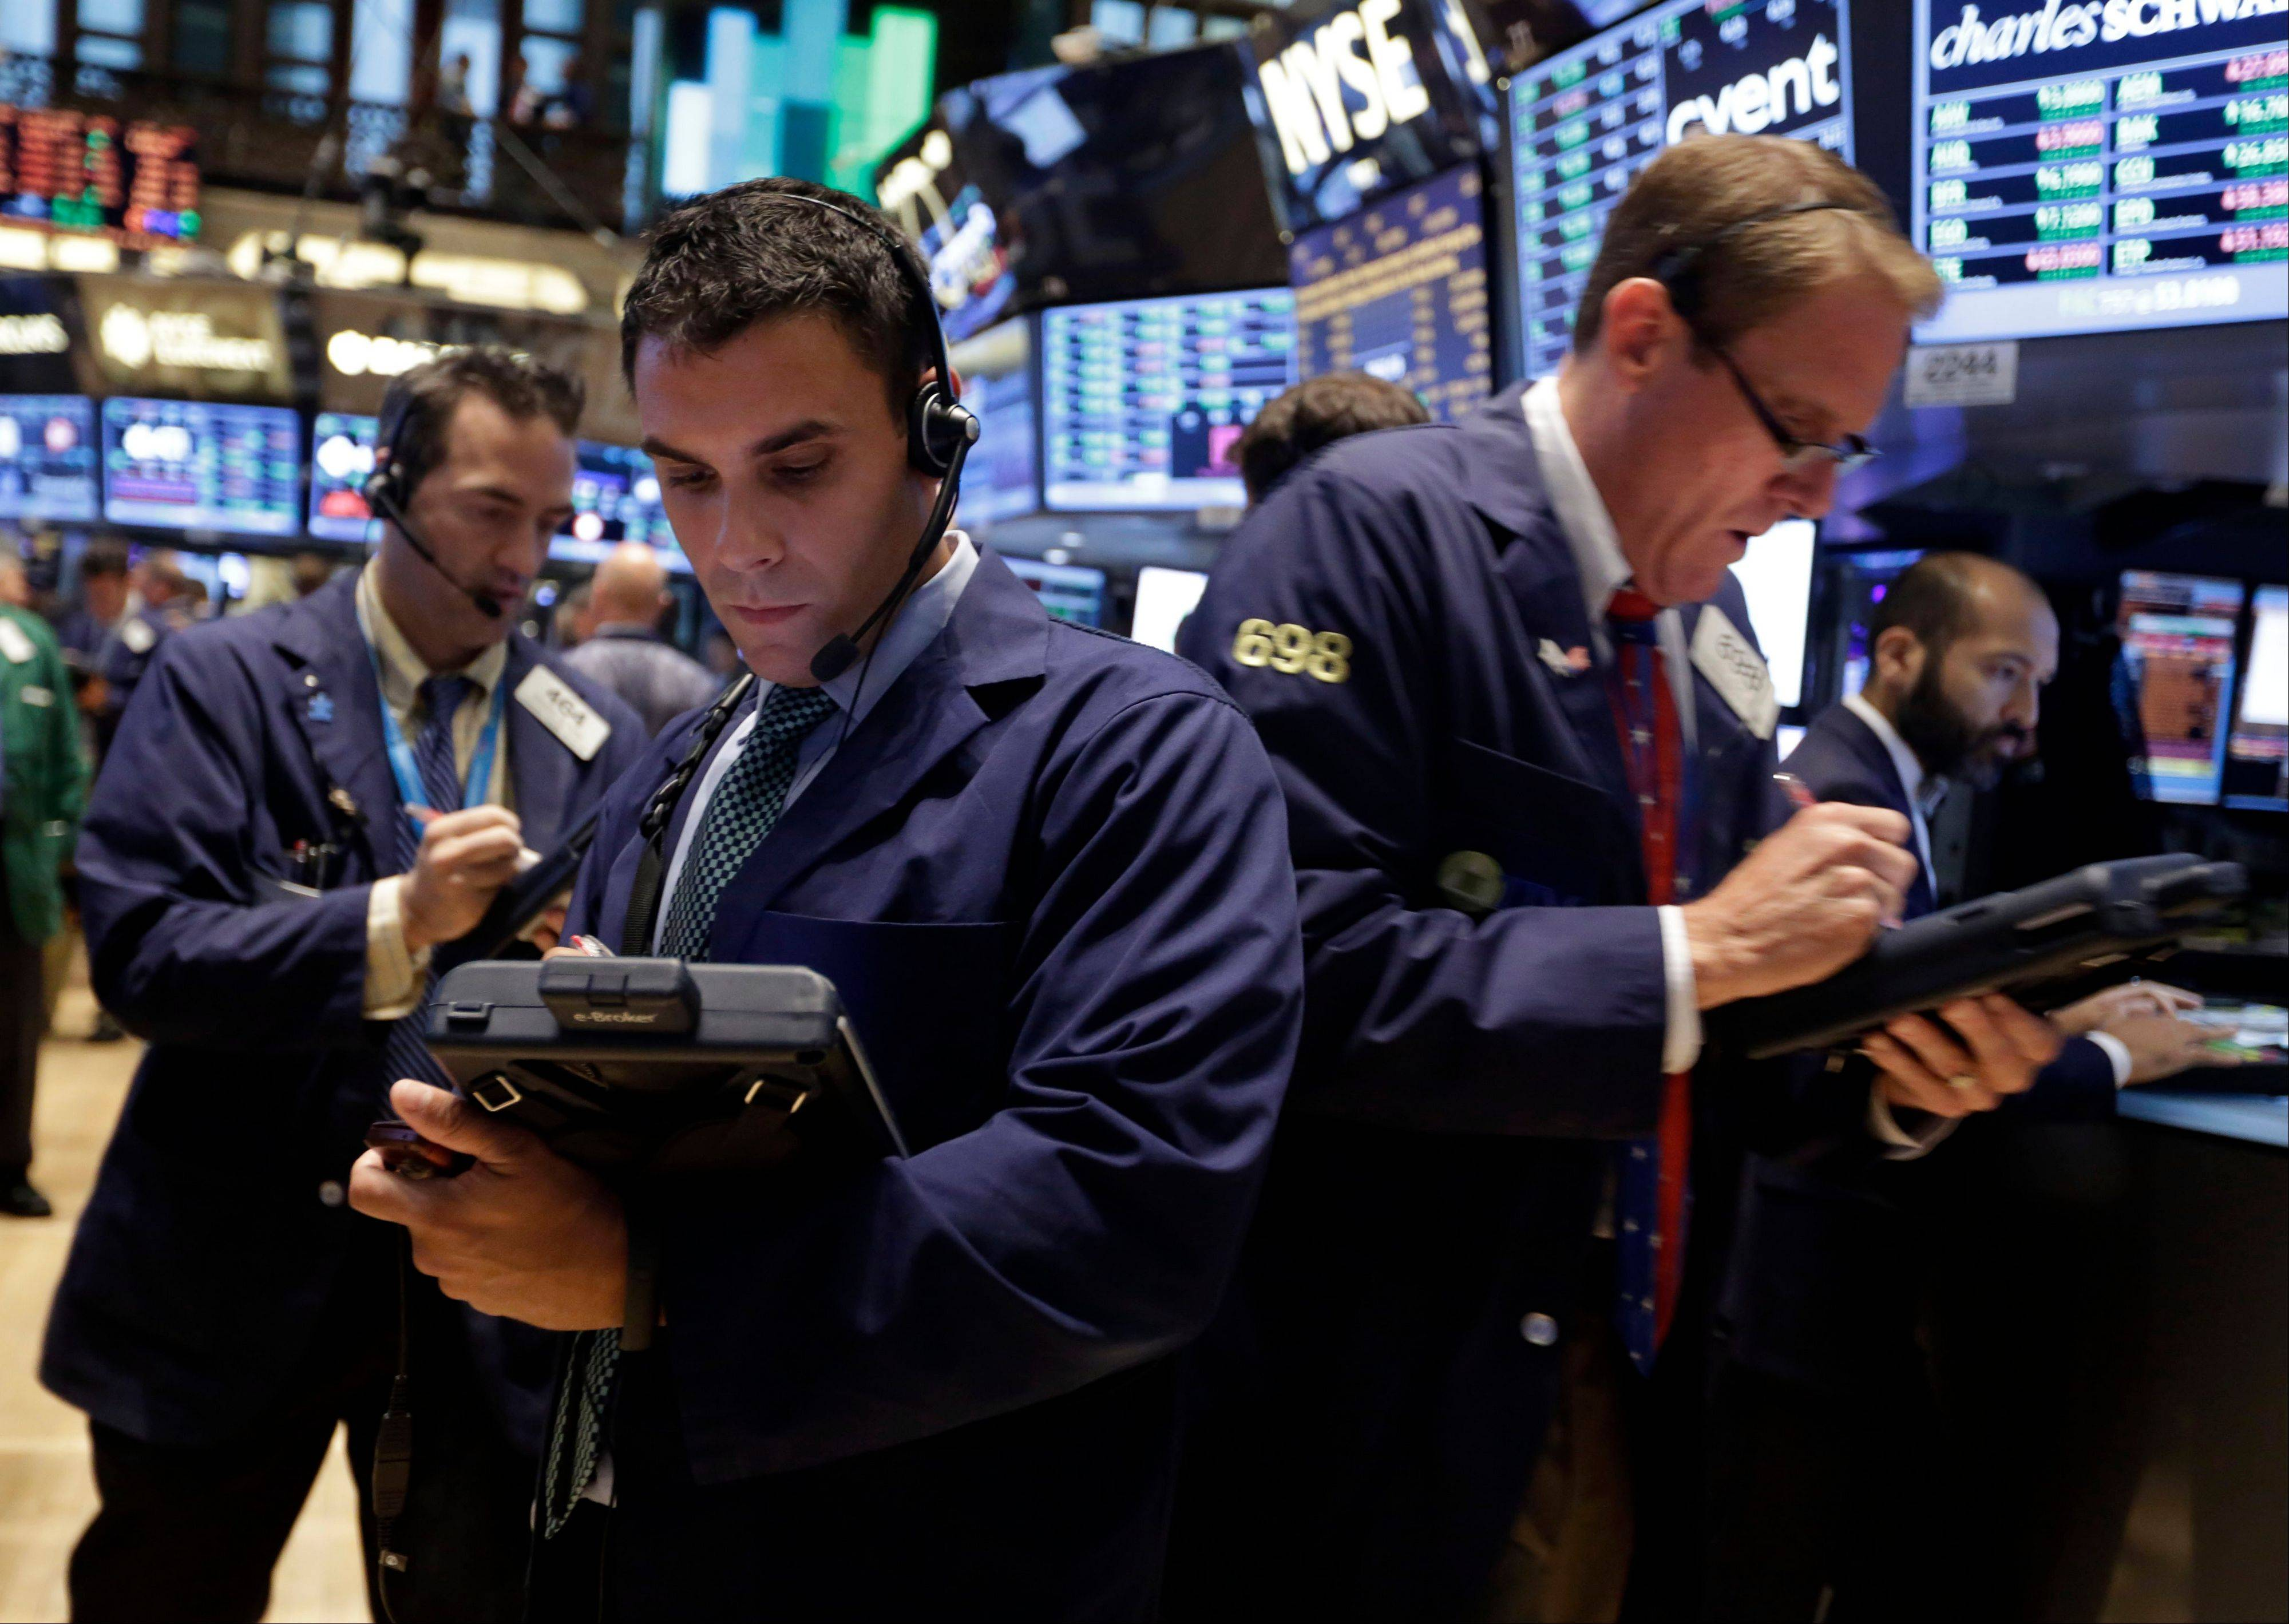 ASSOCIATED PRESSU.S. stocks rose, sending the Standard & Poor's 500 Index to a five-week high, after Lawrence Summers withdrew his bid to be Federal Reserve chairman and tensions over dealing with Syria's chemical weapons eased.